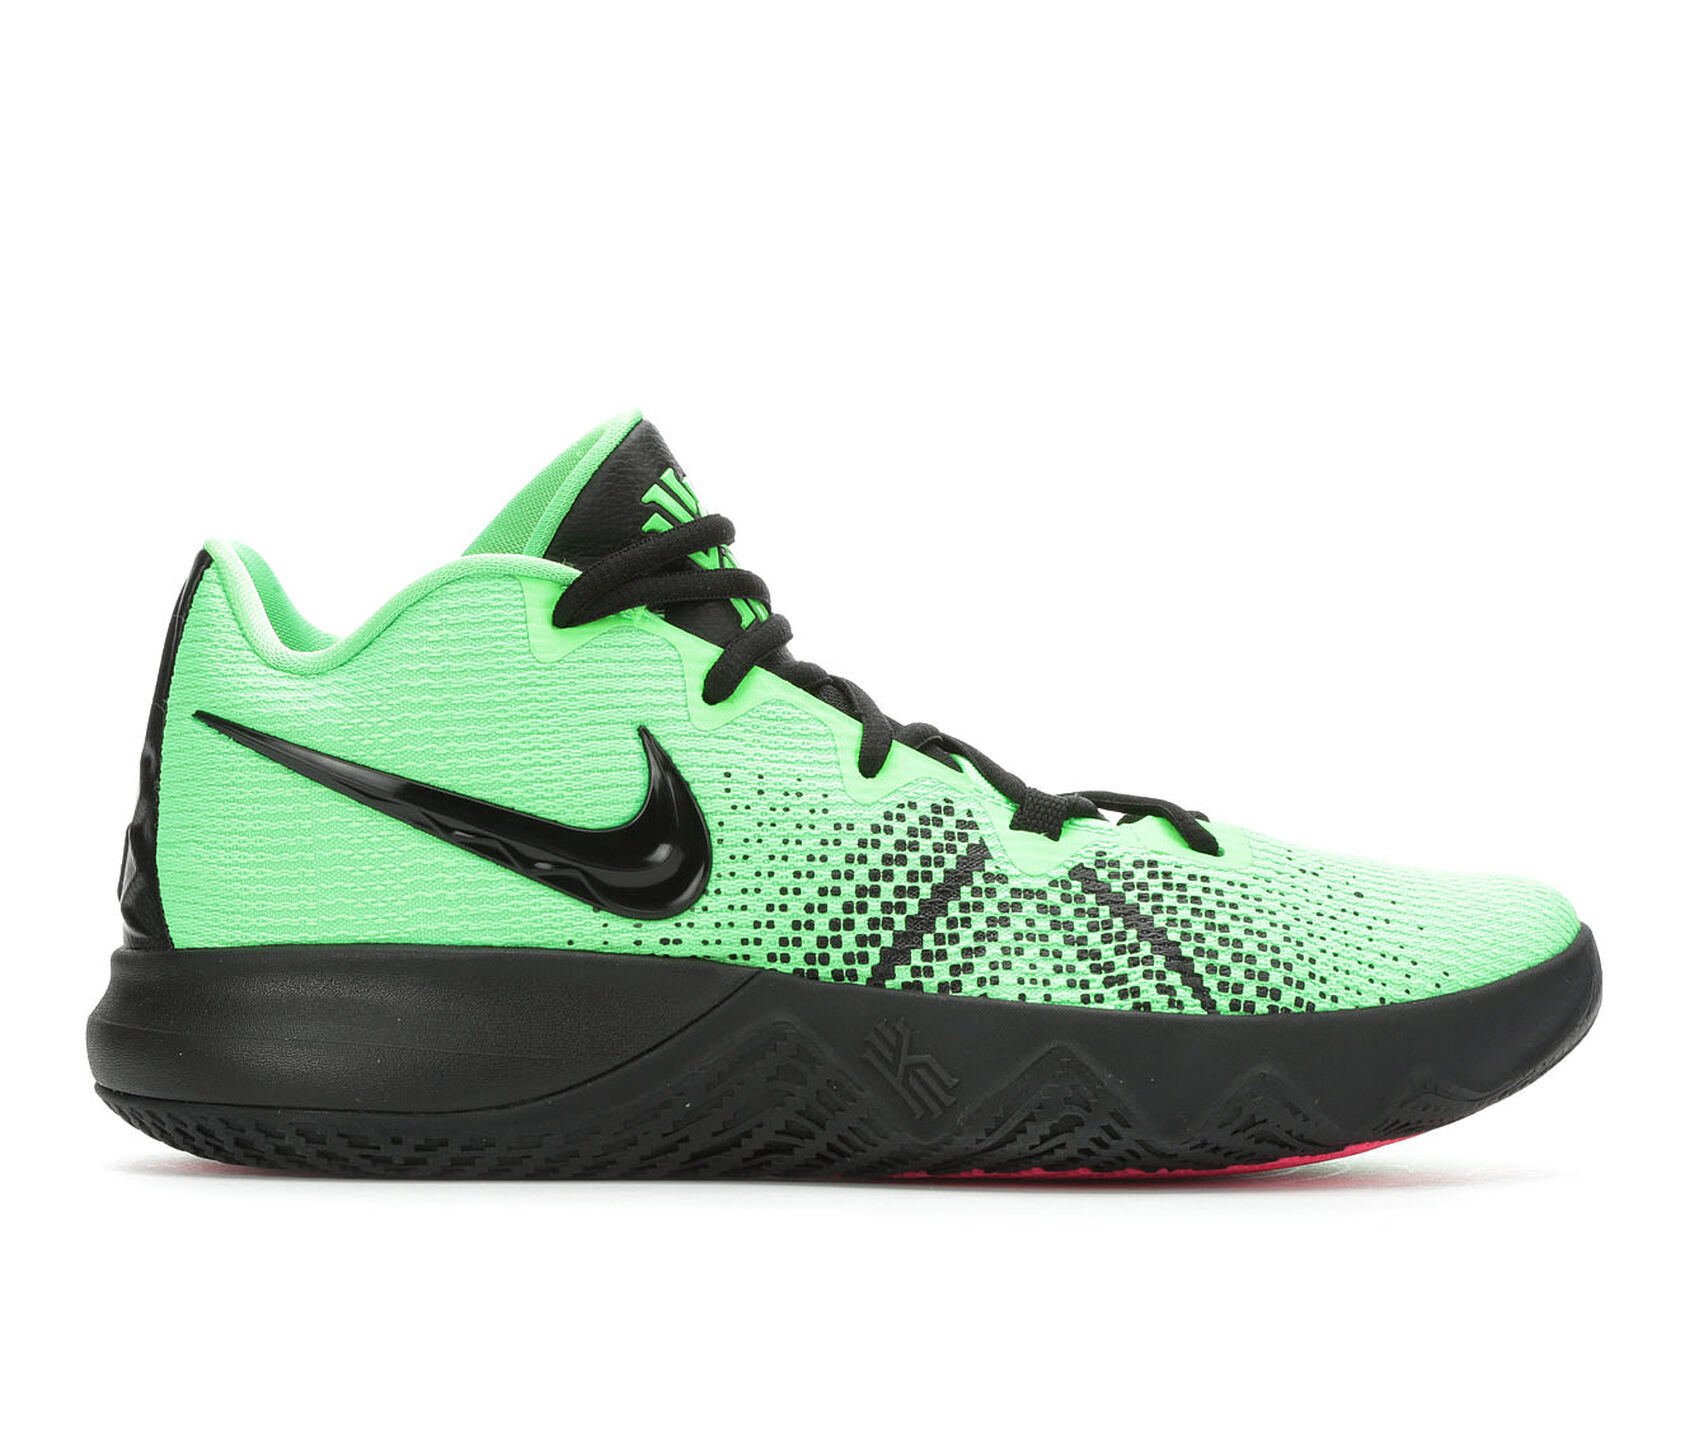 fe814b1b Men's Nike Kyrie Flytrap Basketball Shoes | Shoe Carnival